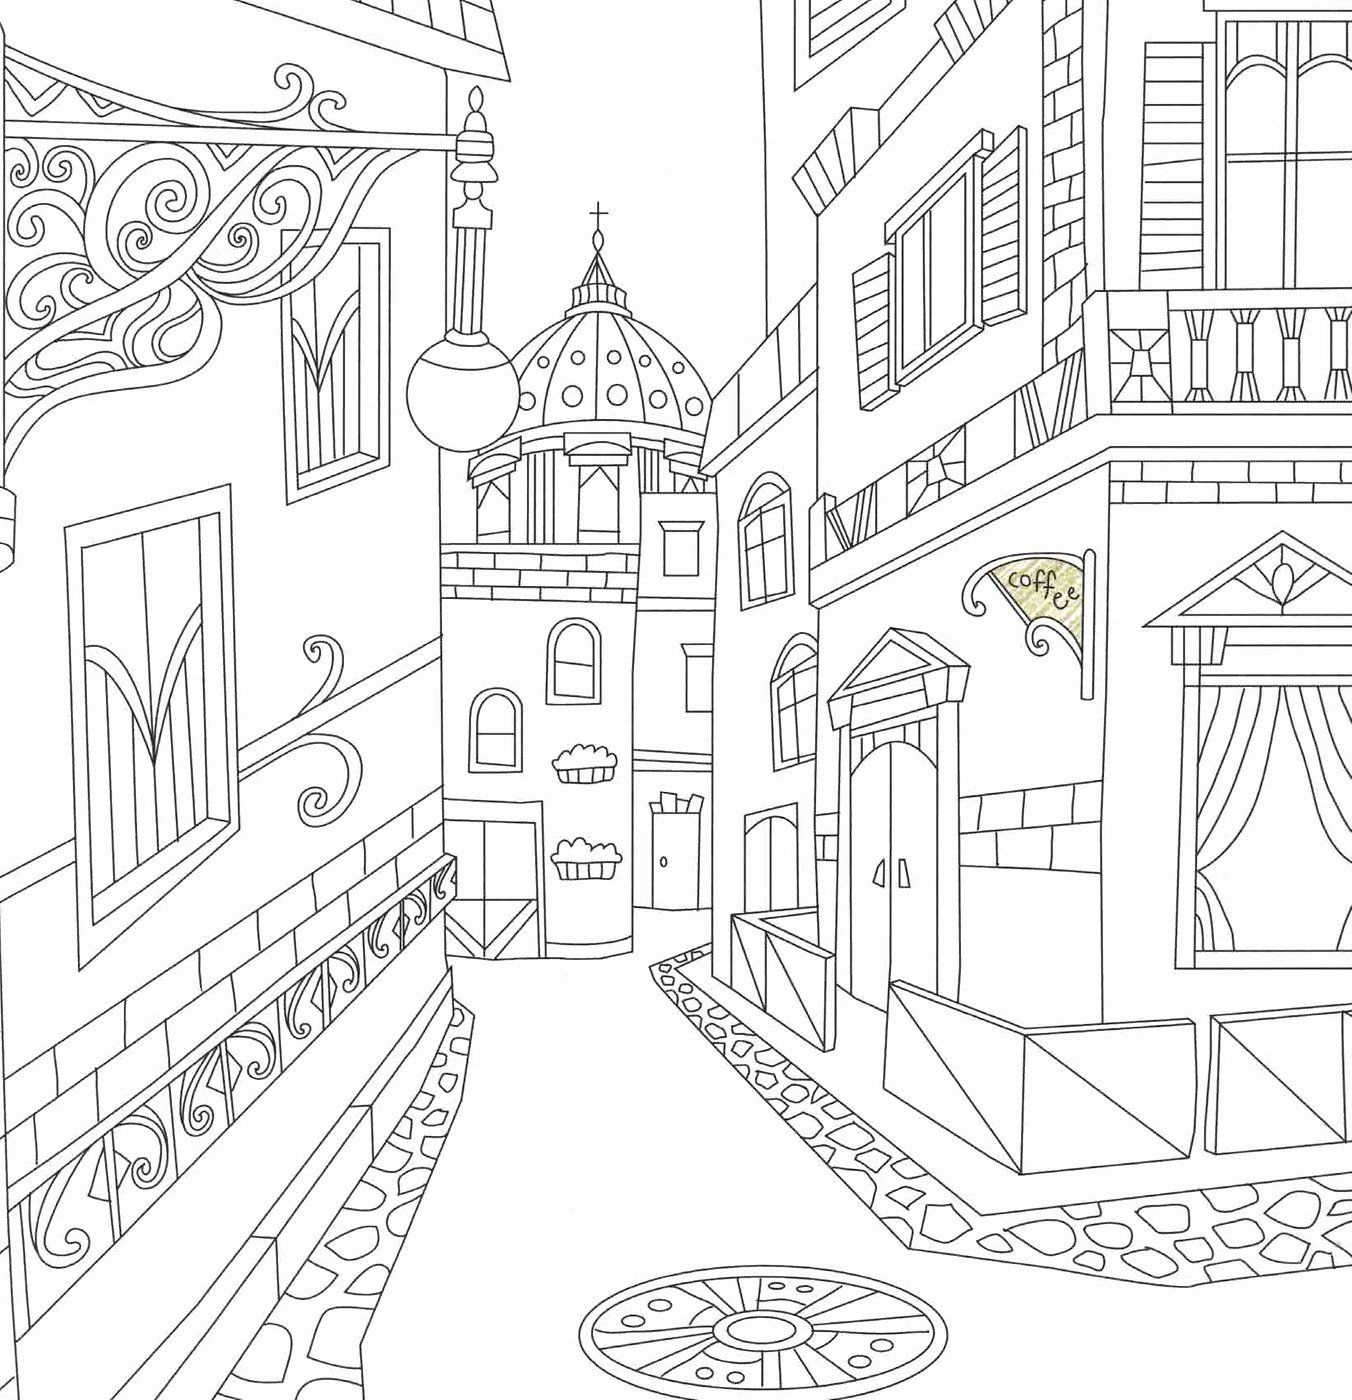 Pin By Shelbel On Art Coloring Pages House Colouring Pages Free Coloring Pages